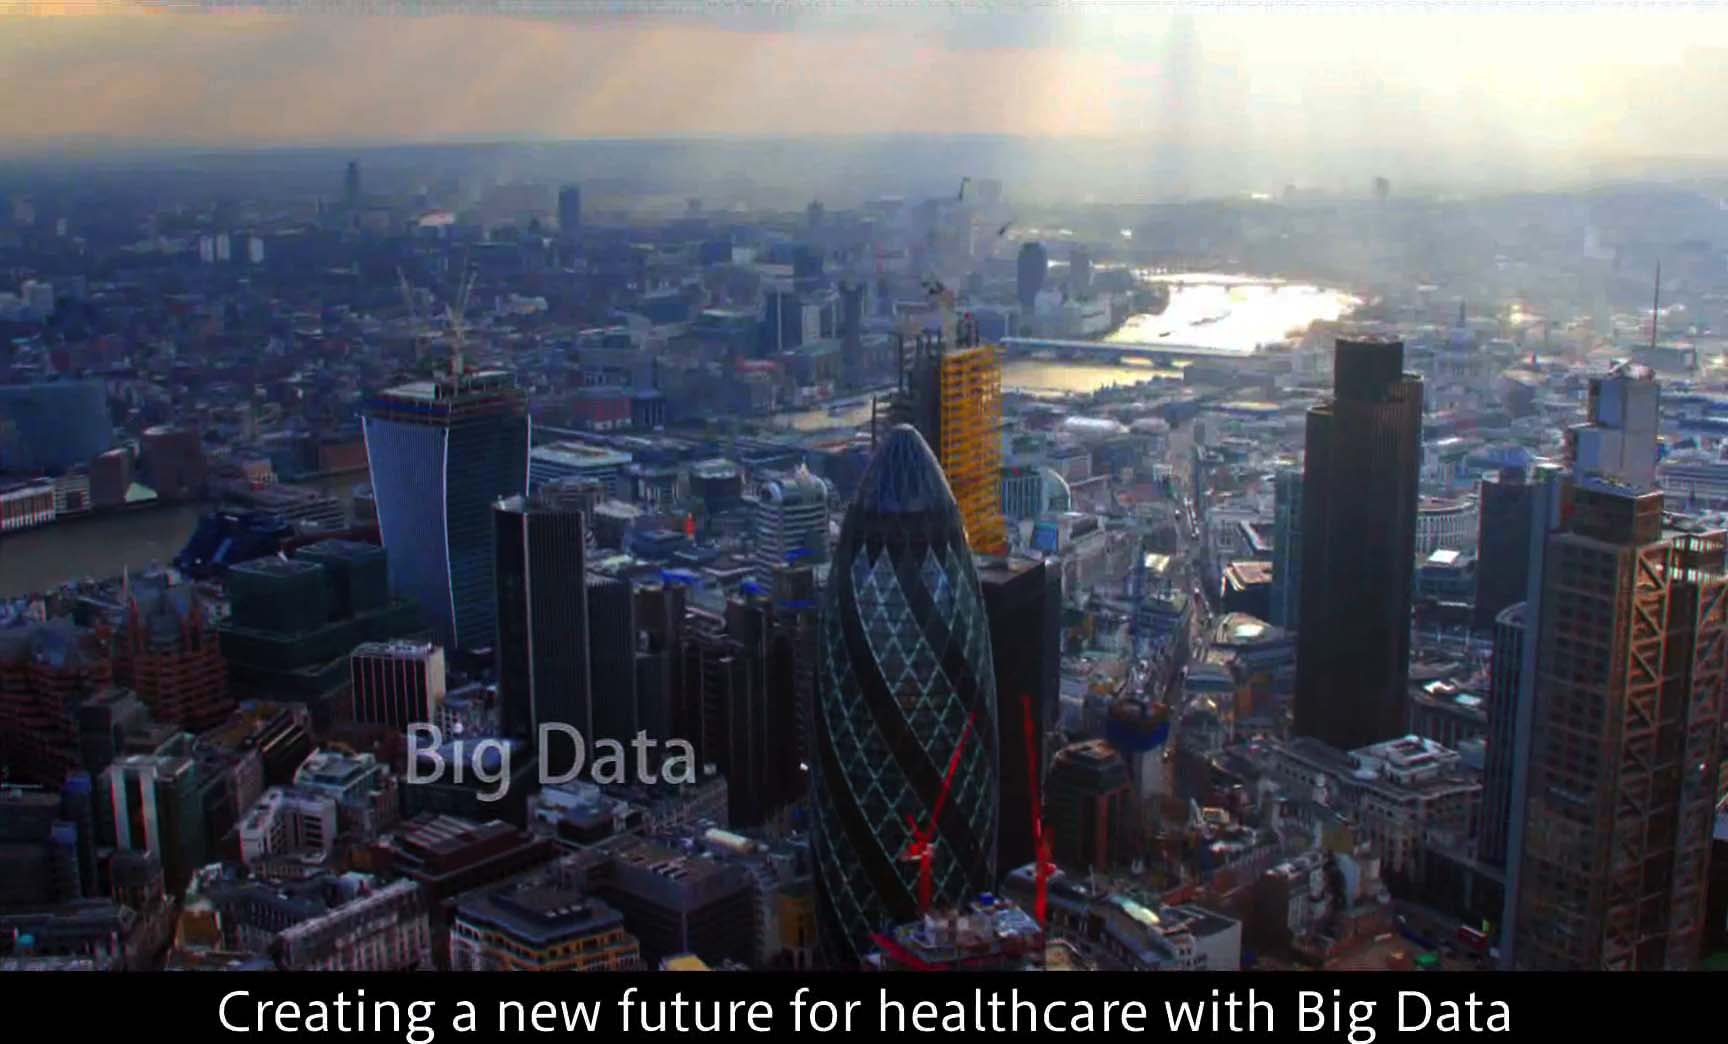 The Future of Healthcare Utilizing Big Data